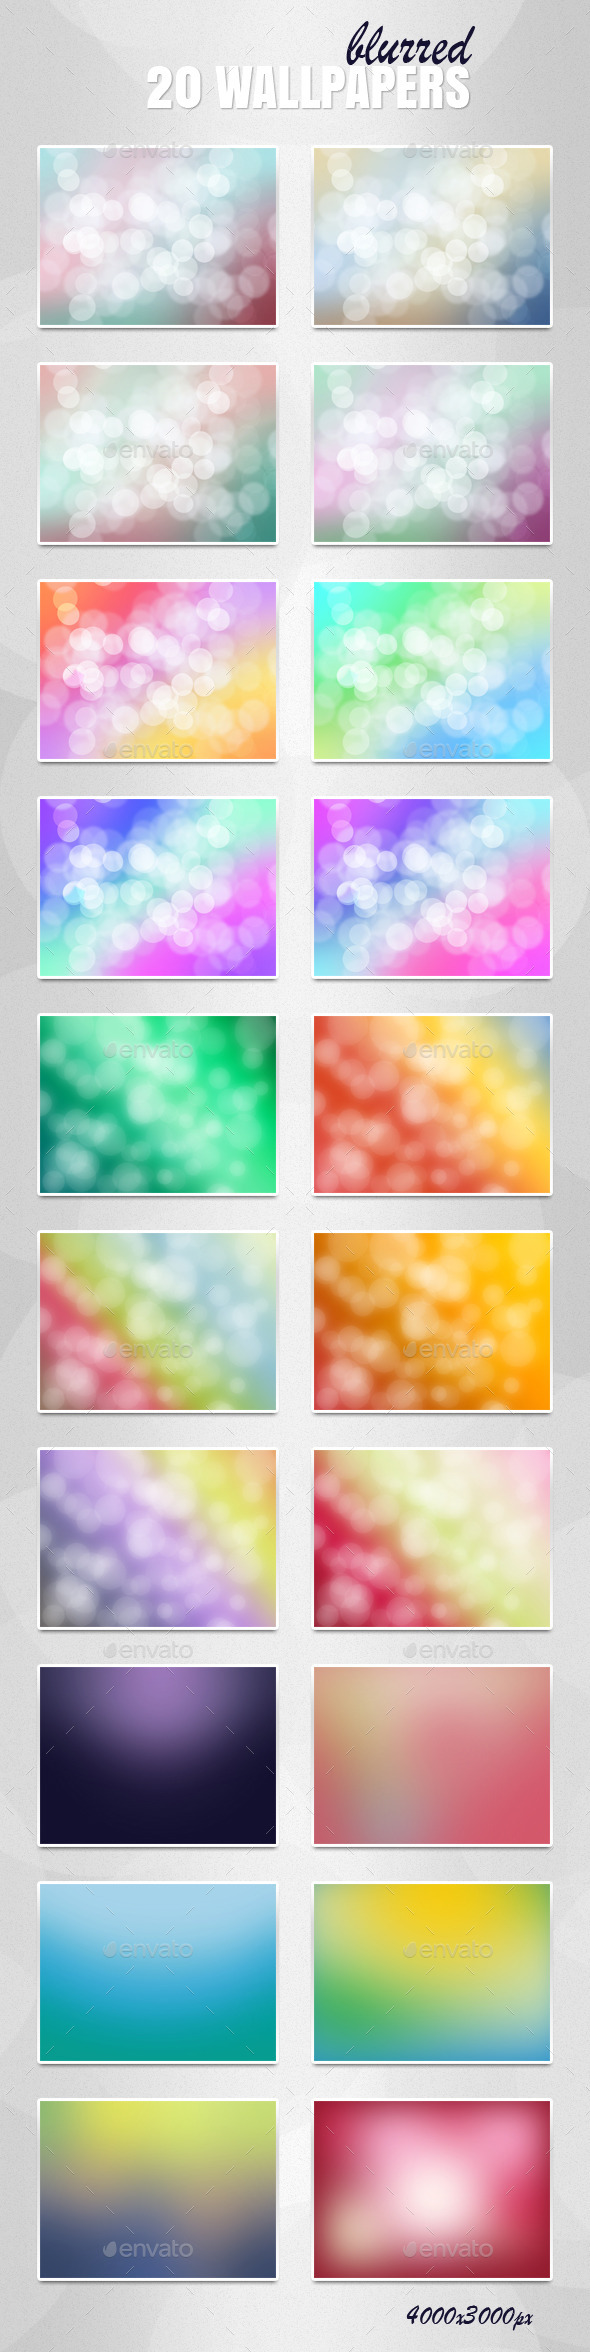 Blurred Backgrounds Set - Backgrounds Graphics